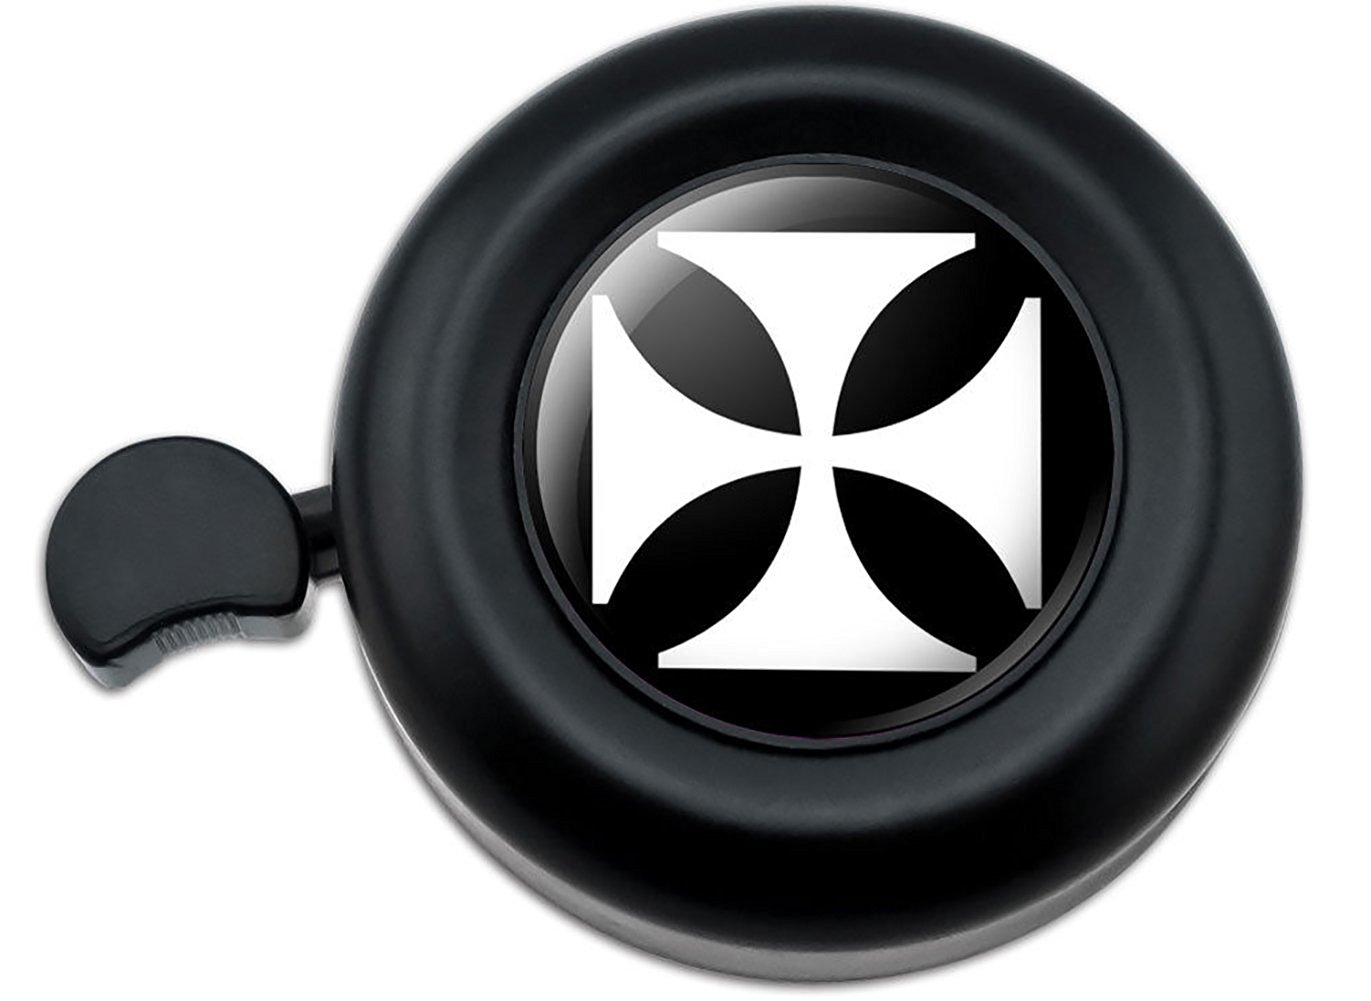 Cool and Custom {Fully Adjustable to Fit Most Bikes} Bicycle Handlebar Bell Made of Hard Metal with Dark Cool Symbolic Powerful Iron Maltese Cross Ancient Design {Black & White Colors}